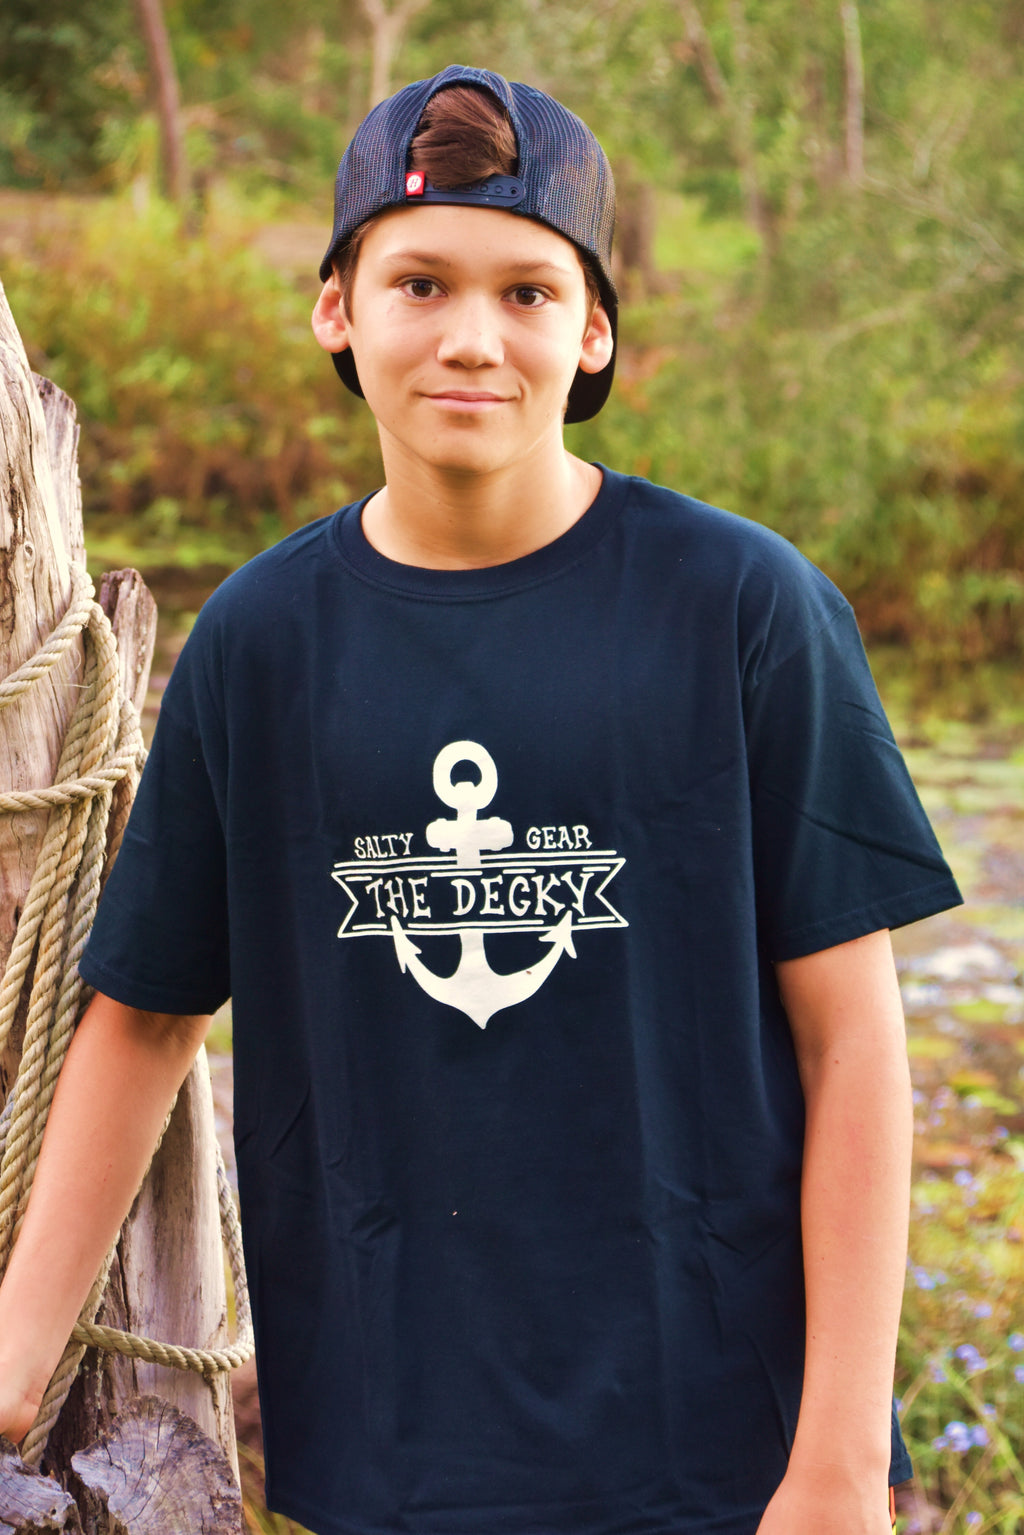 THE DECKY Short Sleeve Cotton Tshirt YOUTH